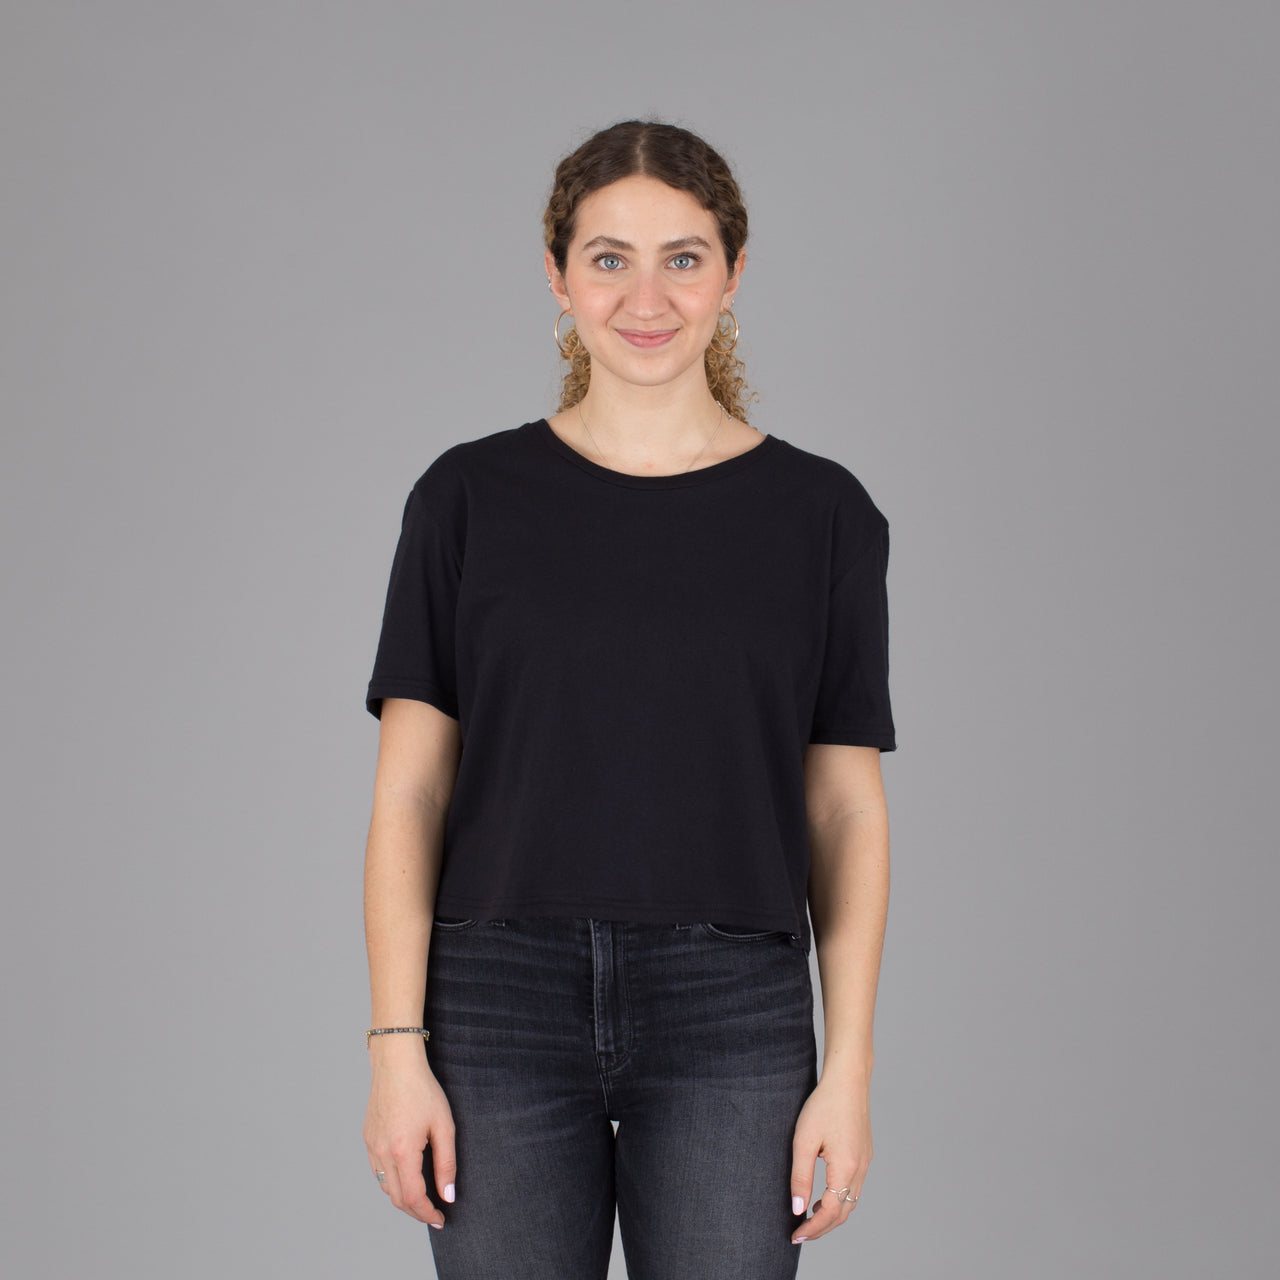 Current Fit Organic Cotton Tee - Black